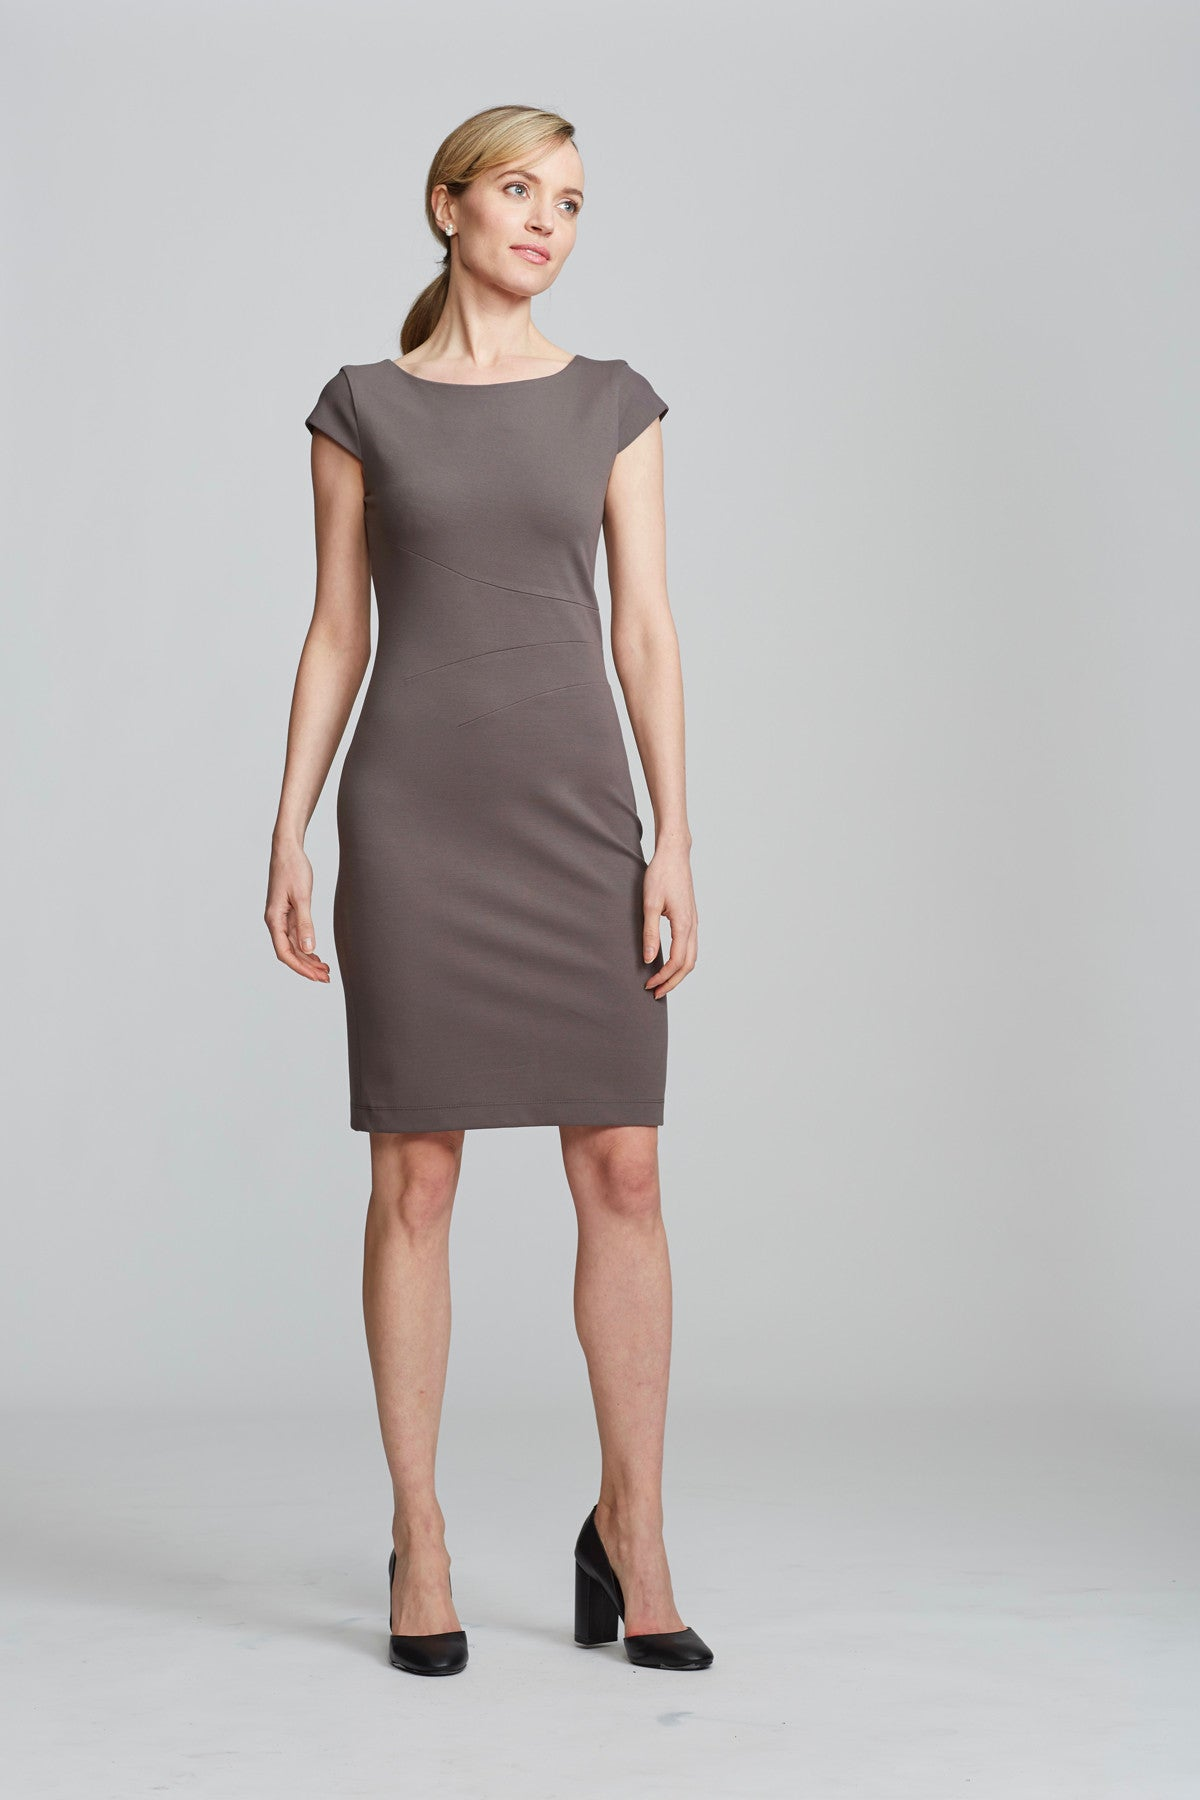 Verana Dress in Slate for Professional Women | Nora Gardner (front)